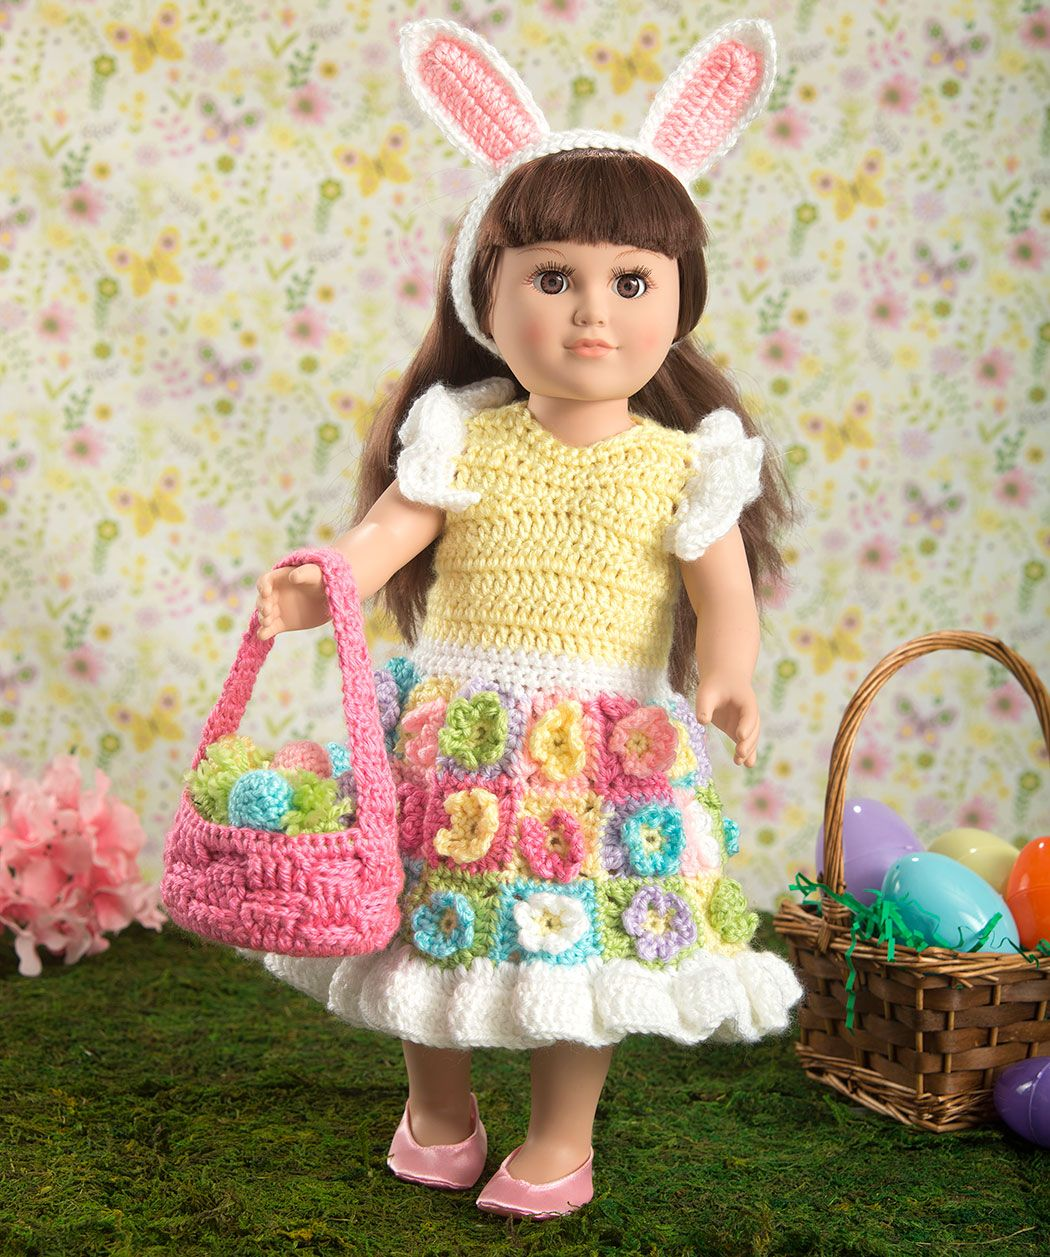 Dress Your 18-inch Doll | Red Heart | American Girls | Pinterest ...